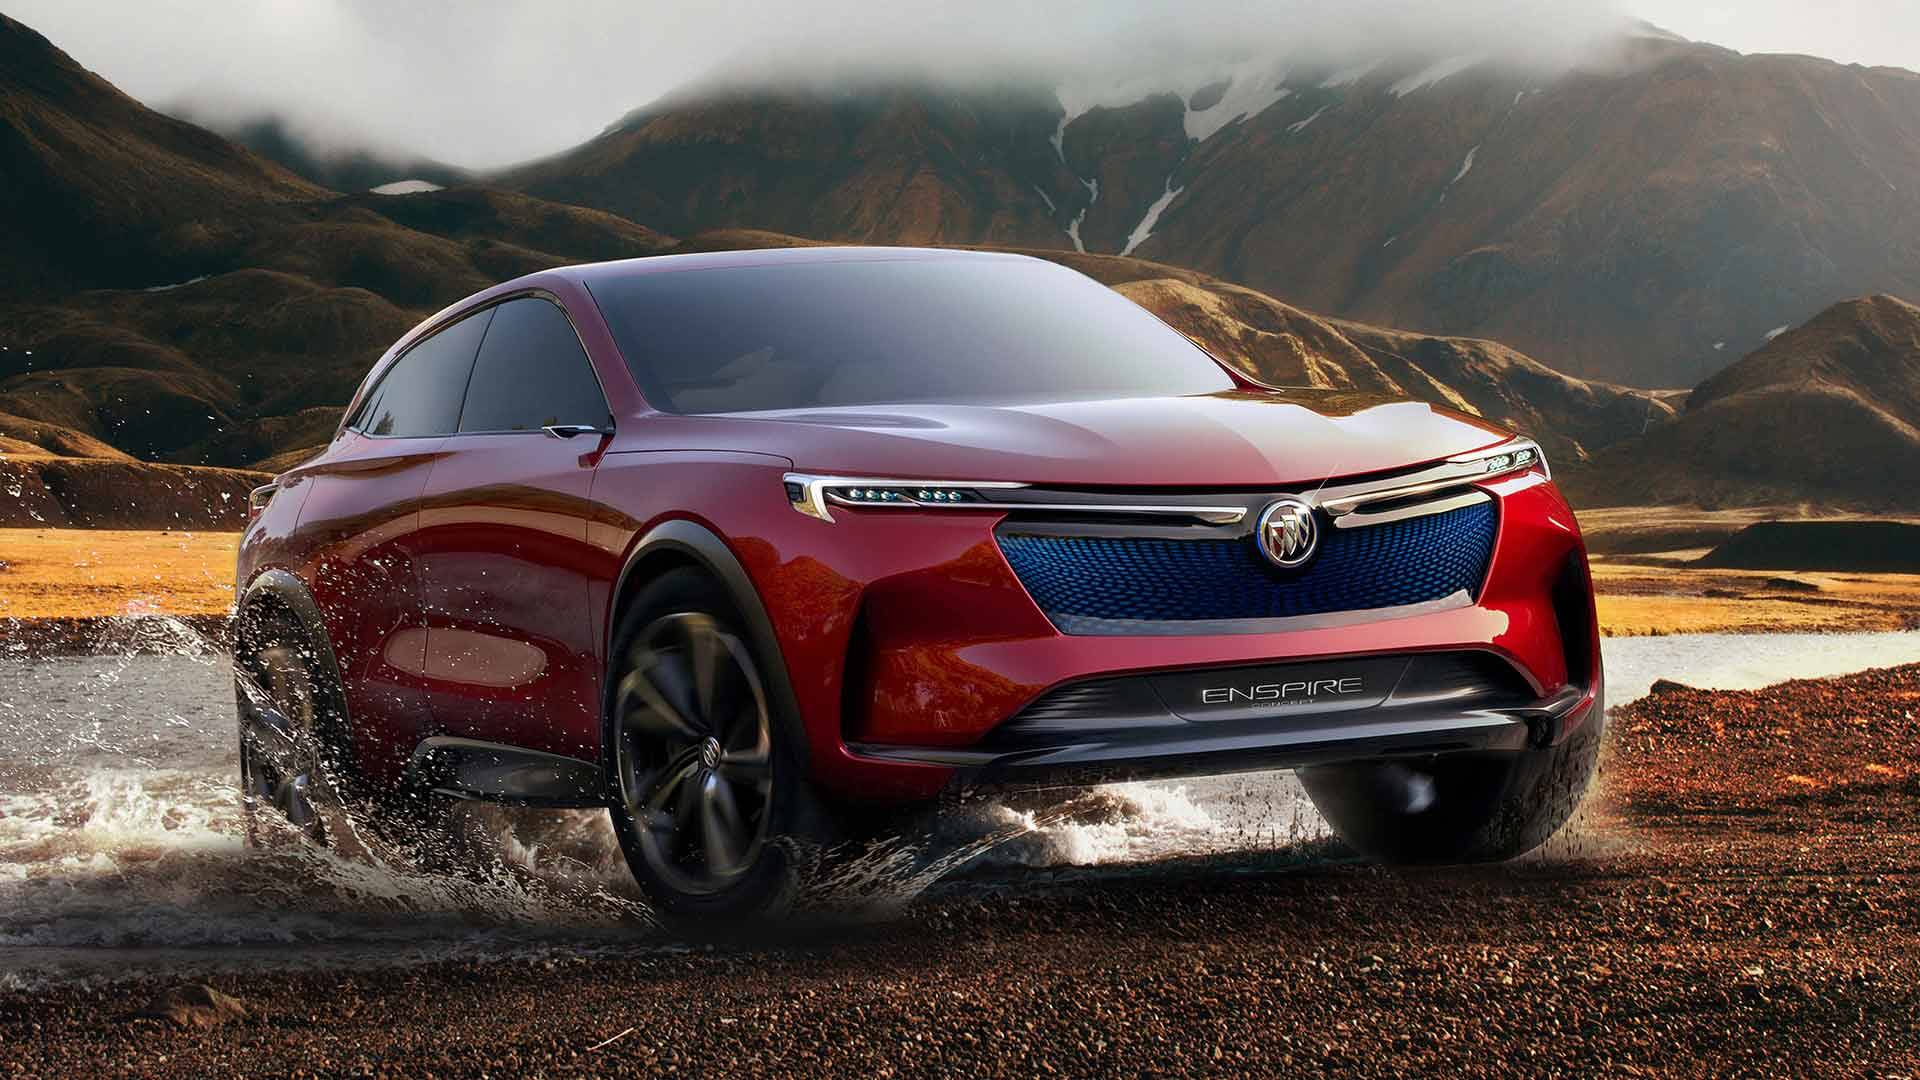 the-buick-enspire-concept-is-an-all-electric-suv-with-550-horsepower-125053_1.jpg